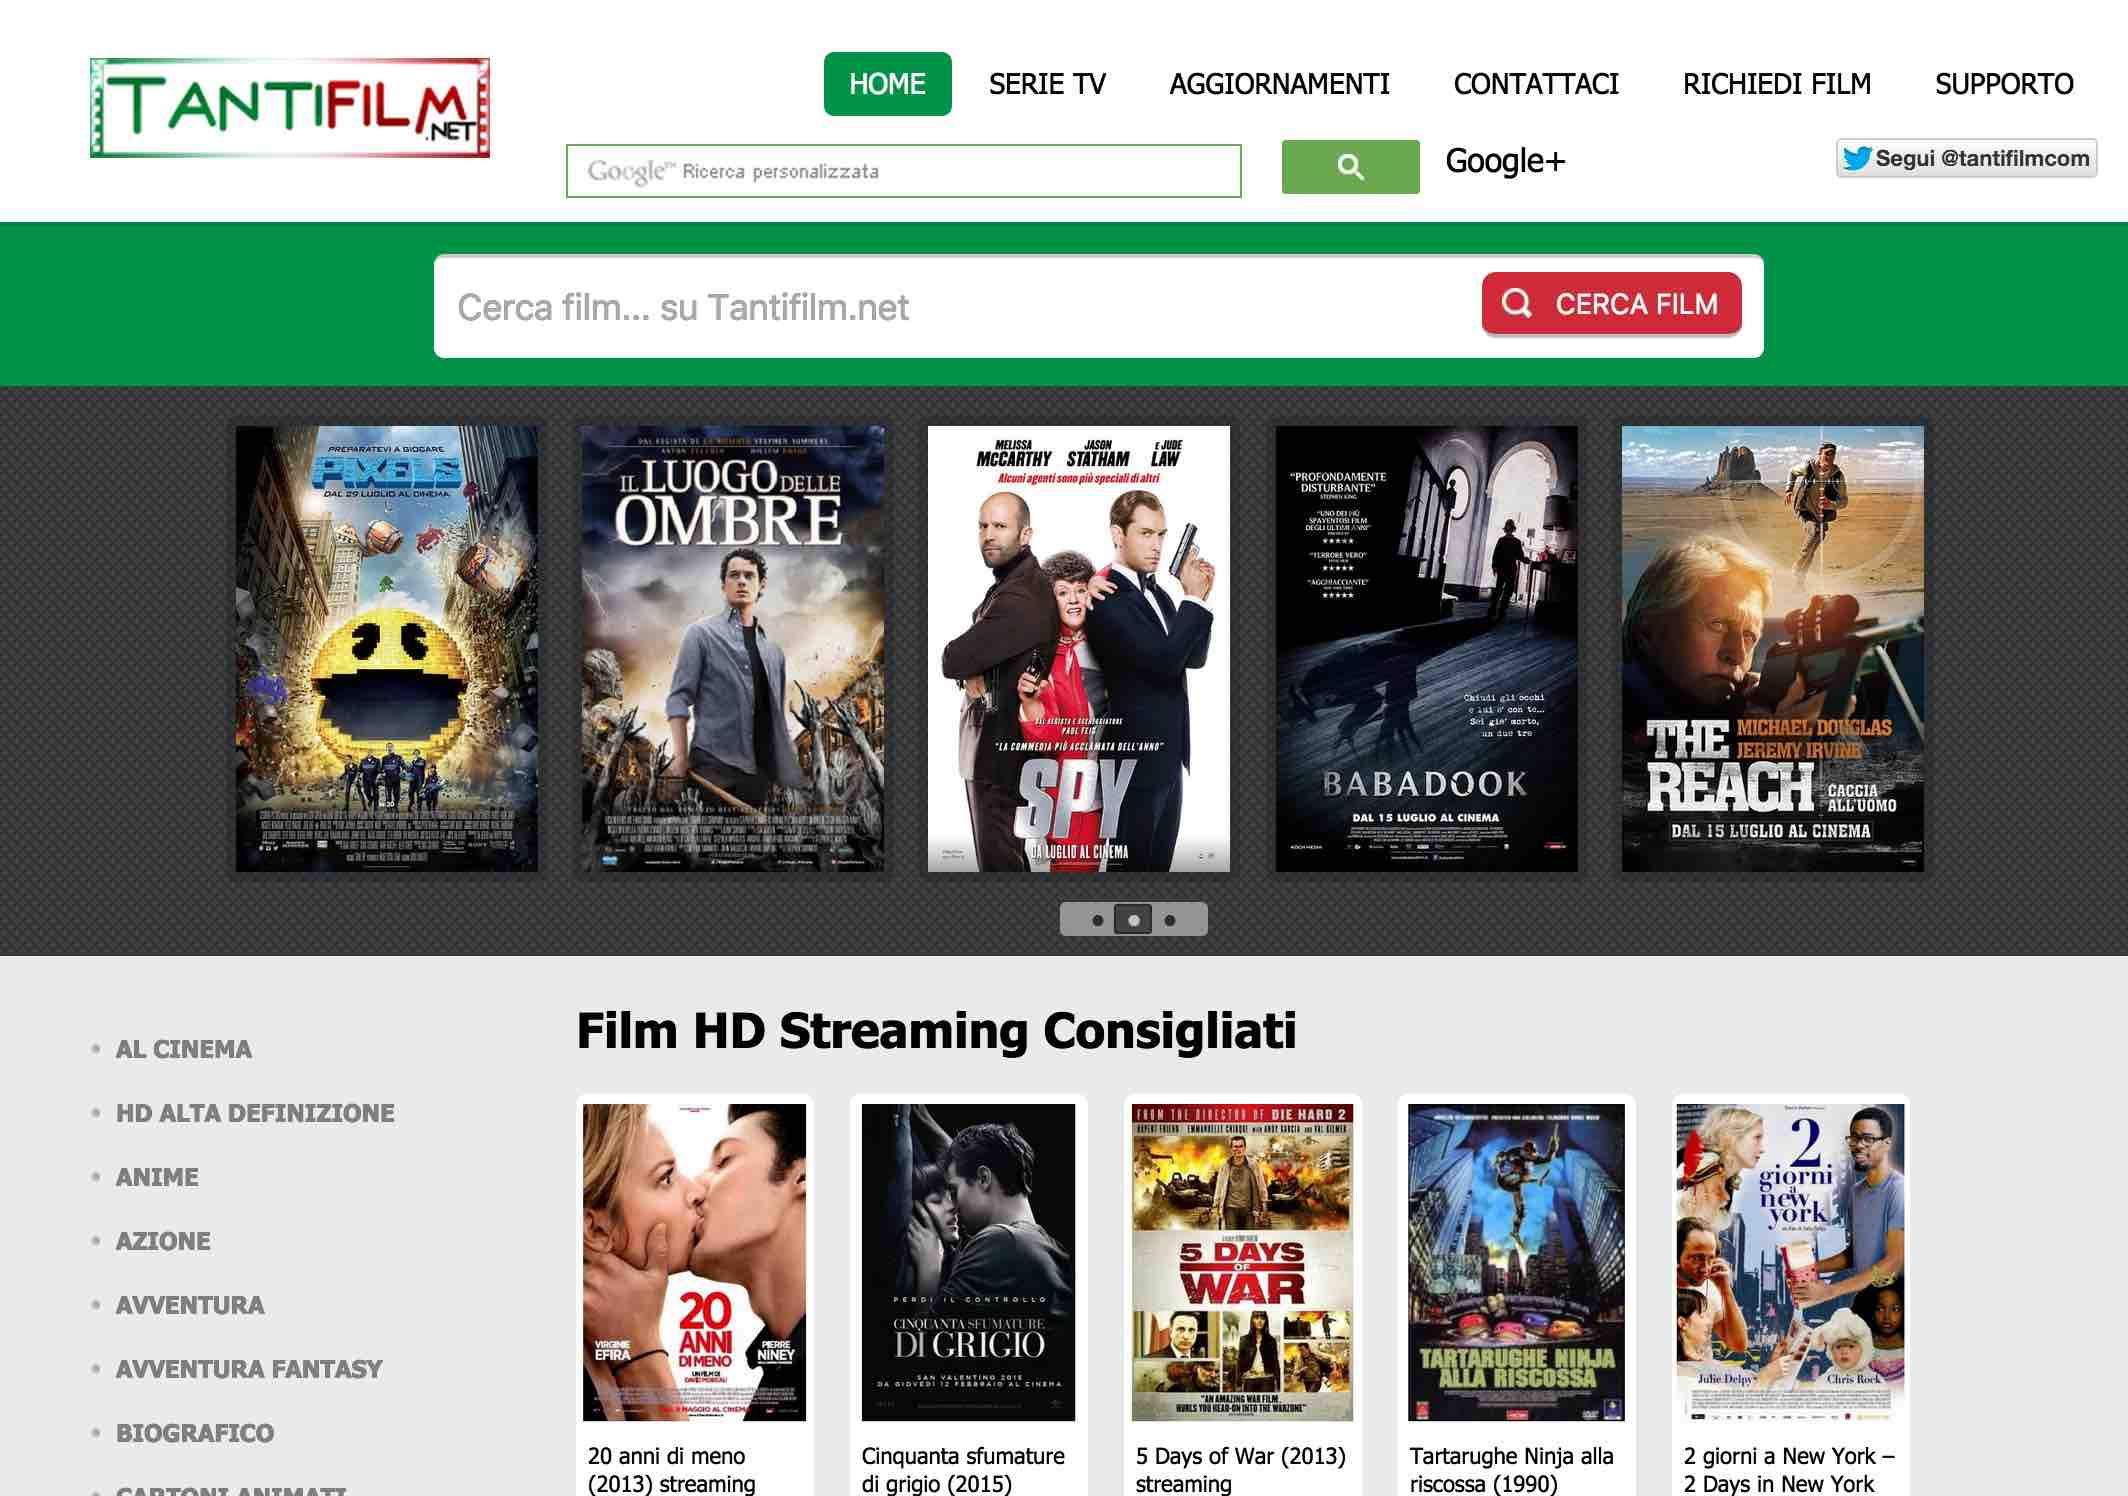 Guardare film streaming con Tantifilm.net